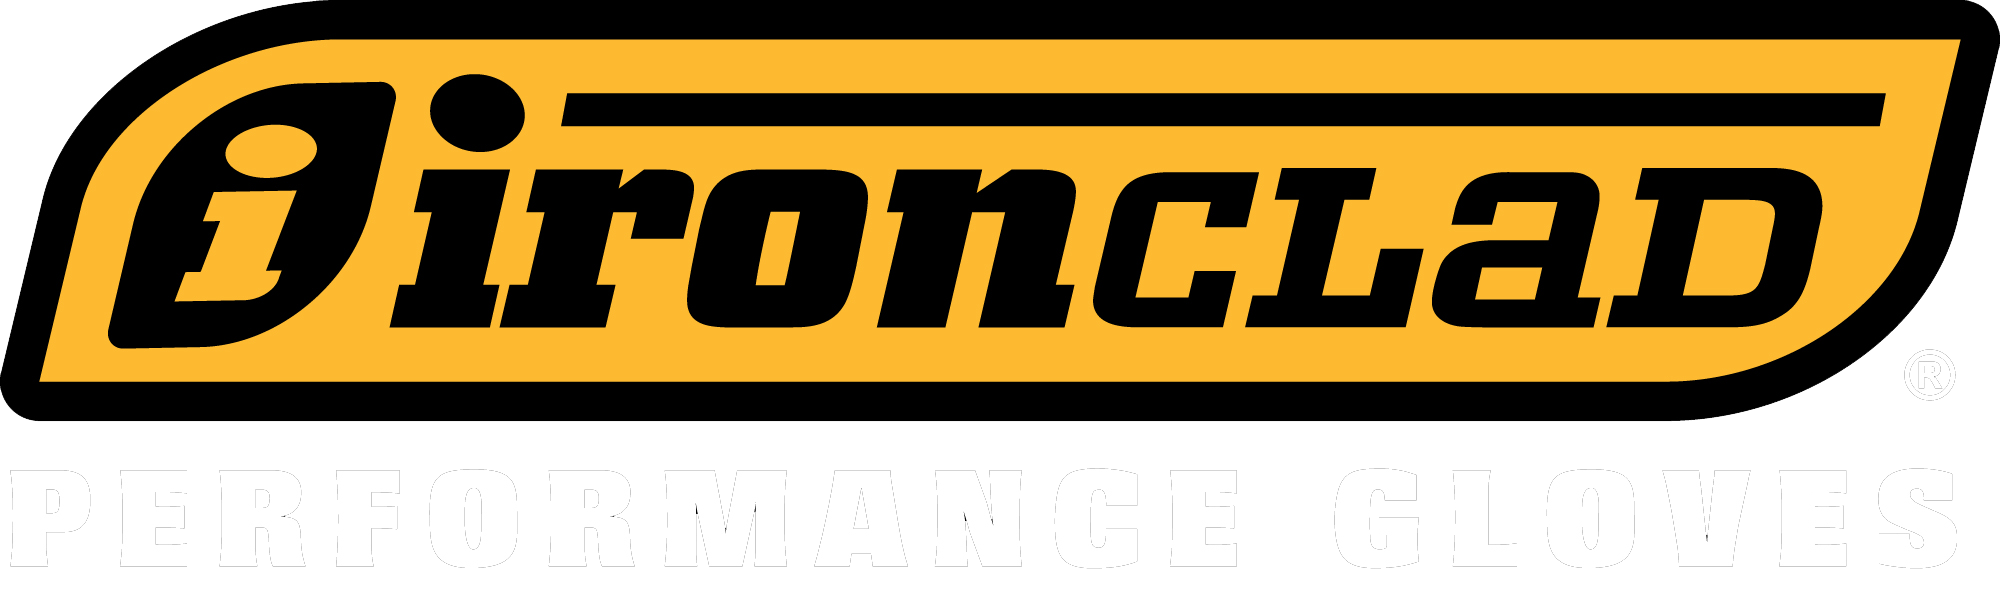 ironclad_logo_y.png